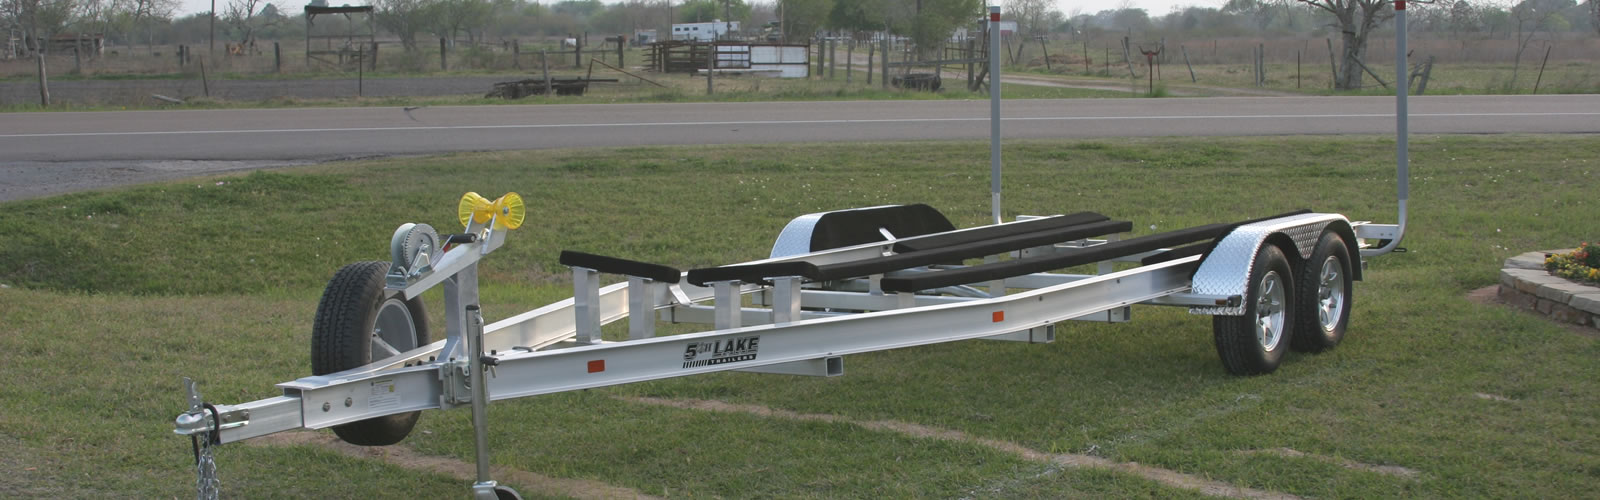 5th Lake Aluminum Boat Trailers